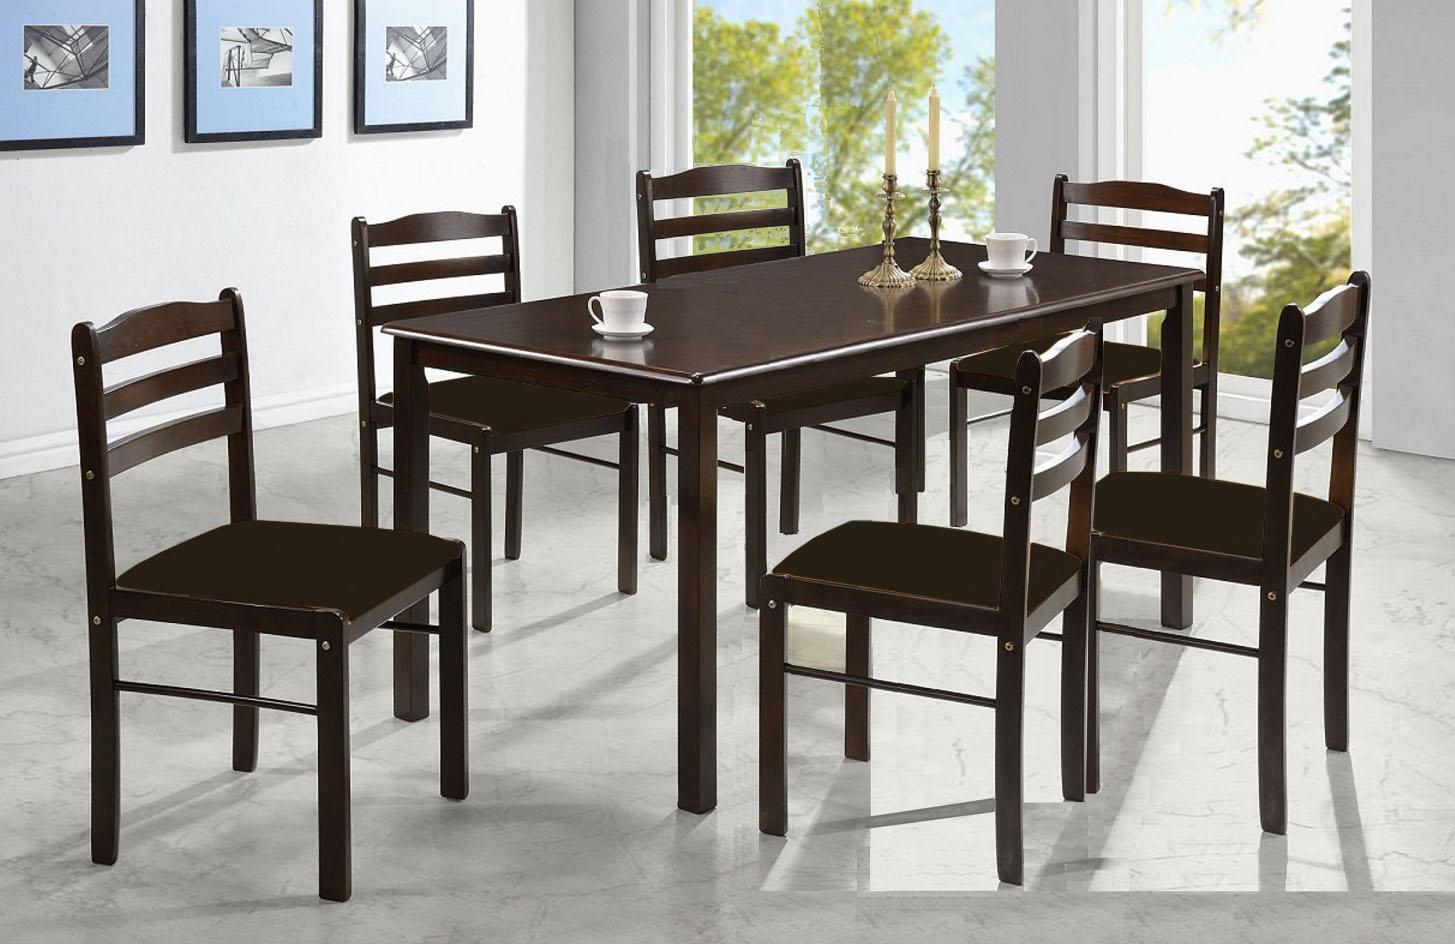 Philippines. ihome-CB Camel Back 6 s Dinning Set (Wood Seat) 1381f4c056